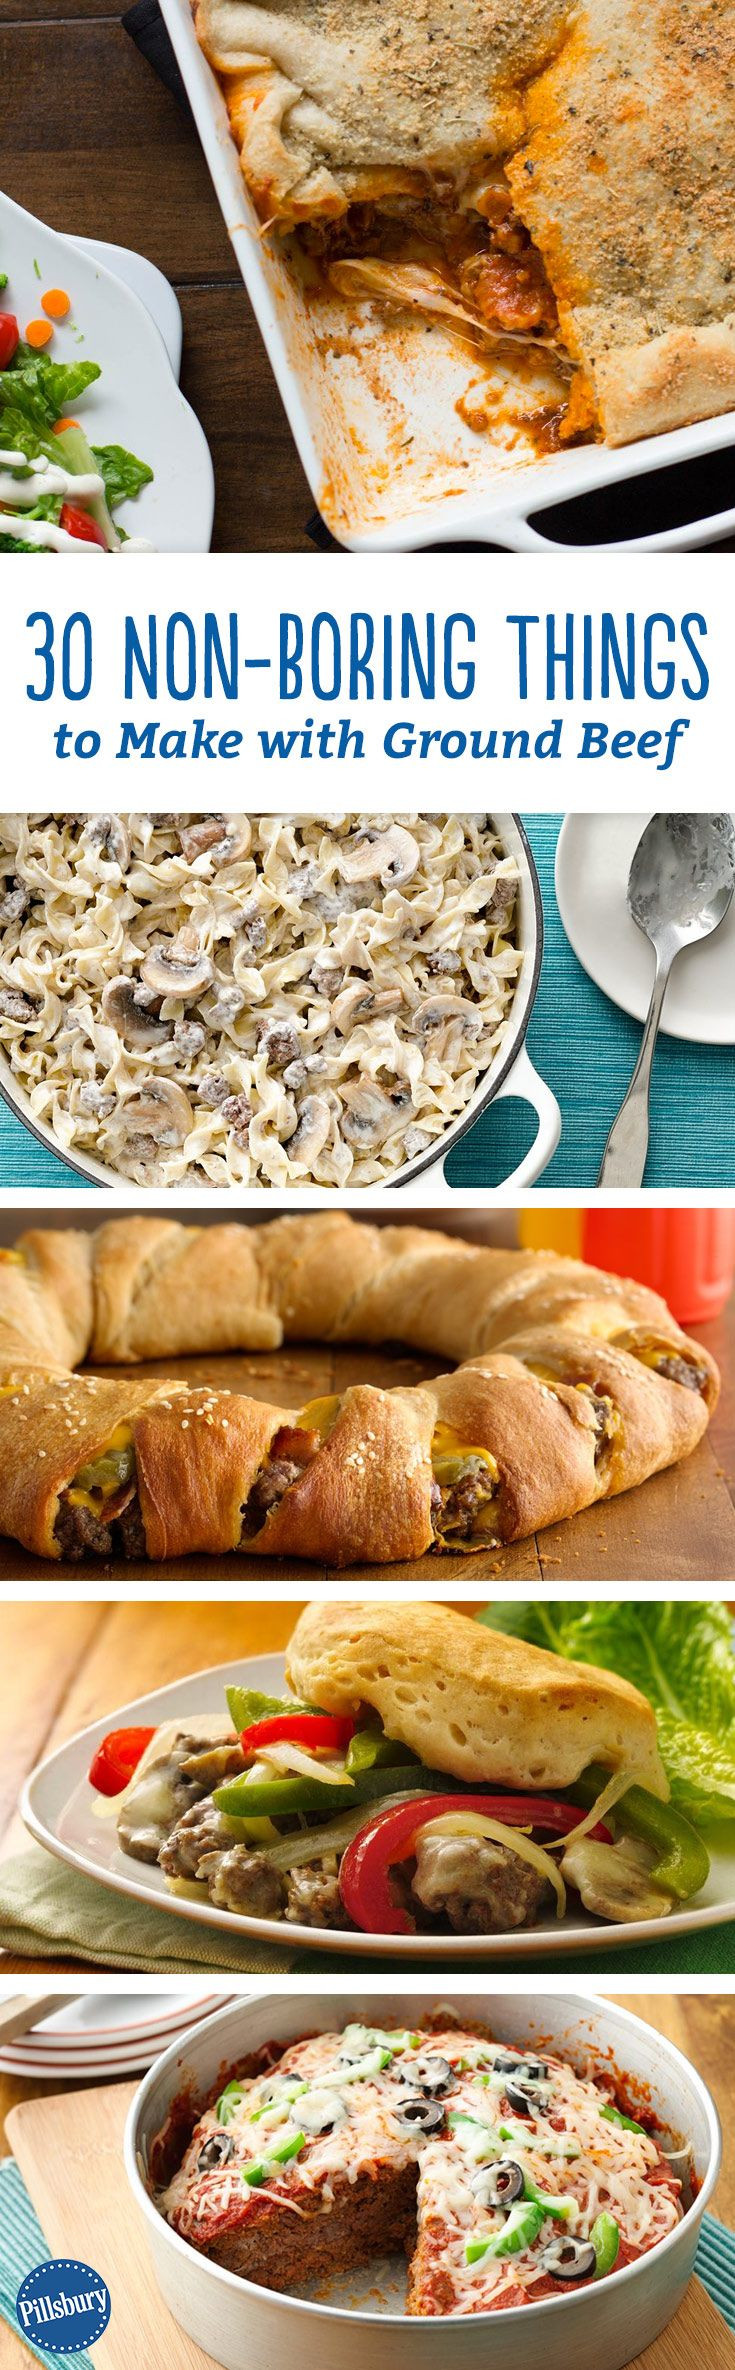 Stuff To Make With Ground Beef  30 Non Boring Things to Make with Ground Beef